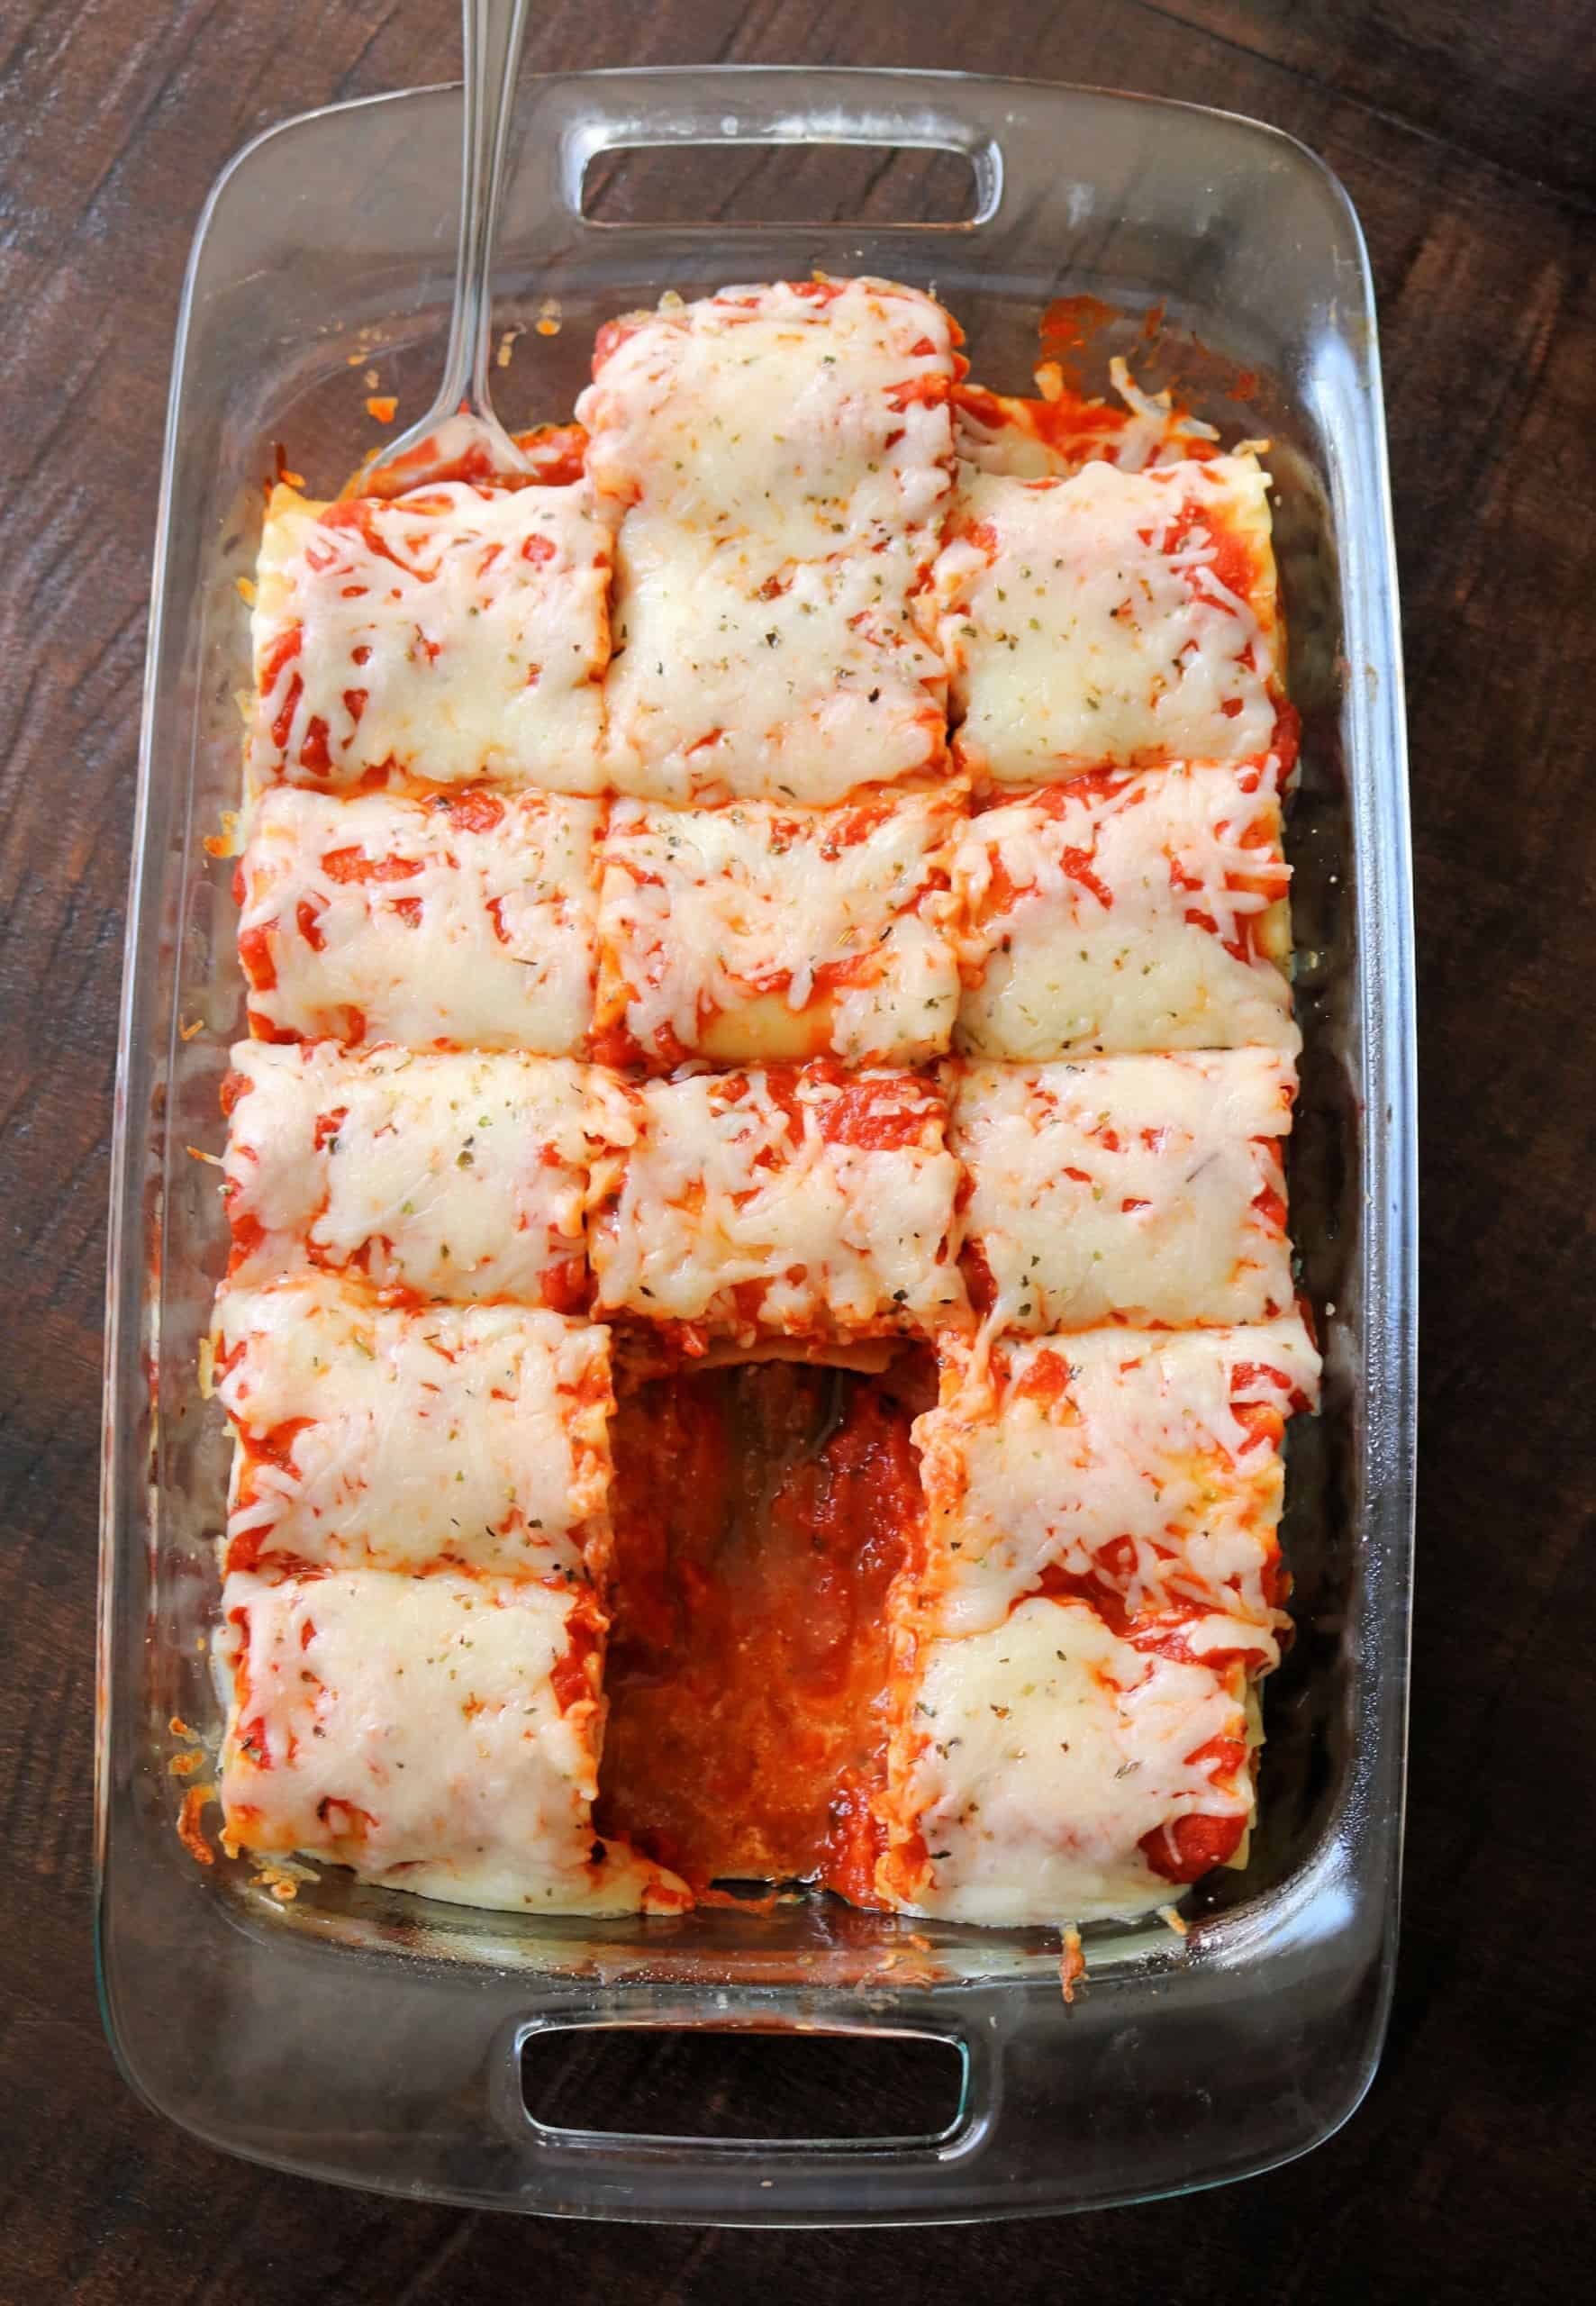 Try my Pepperoni Pizza Lasagna Roll Ups recipe for an easy, delicious family dinner! Make these easy lasagna roll ups in under 30 minutes with lasagna noodles, pepperoni slices, marinara sauce, ricotta, and mozzarella cheese. Can make ahead and freeze too! #lasagna #dinner #easyrecipe